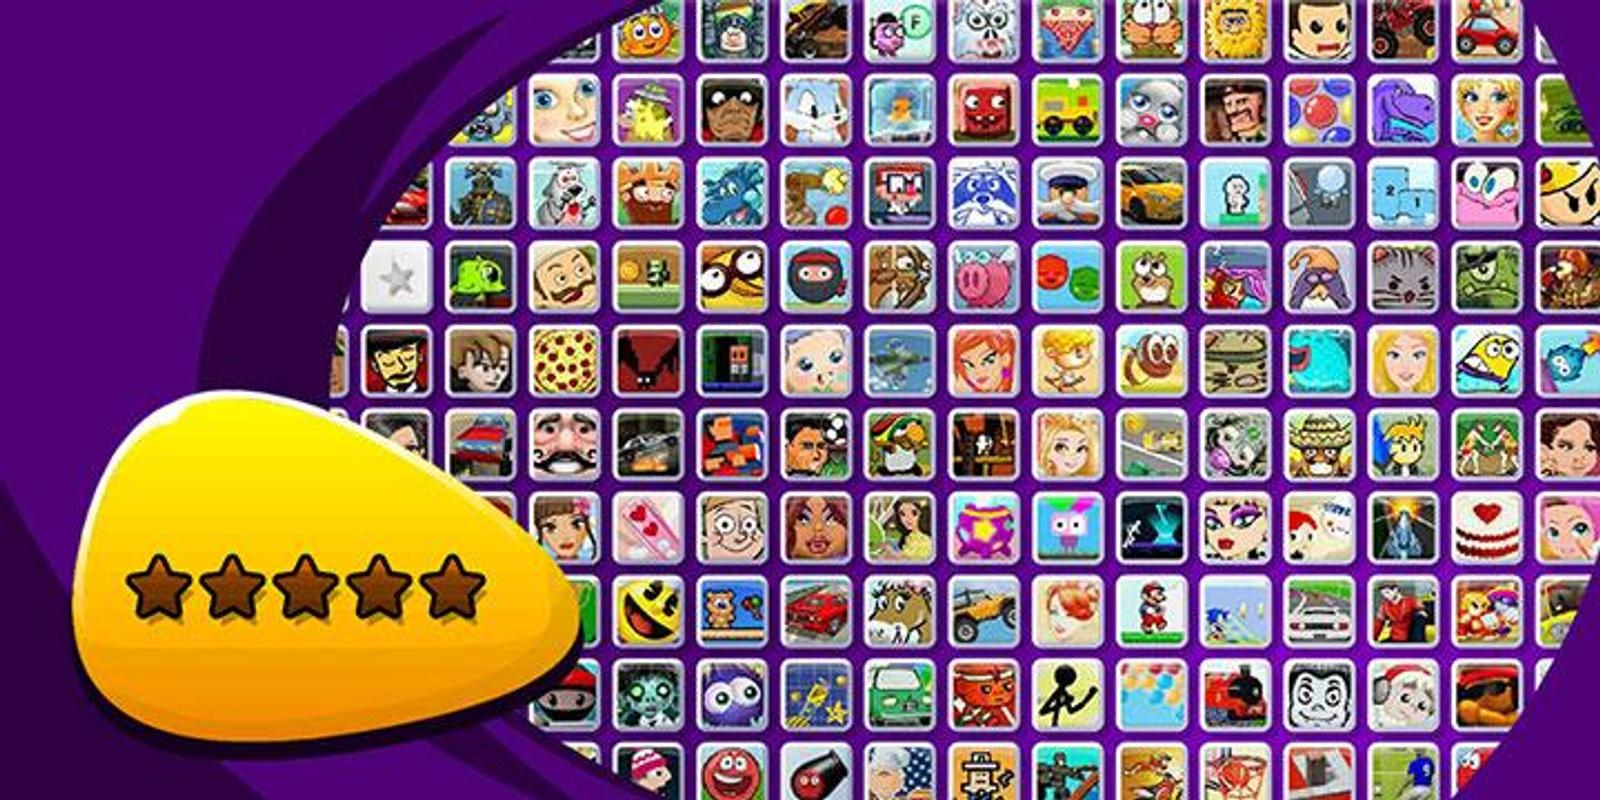 Juegos Gratis Online For Android Apk Download